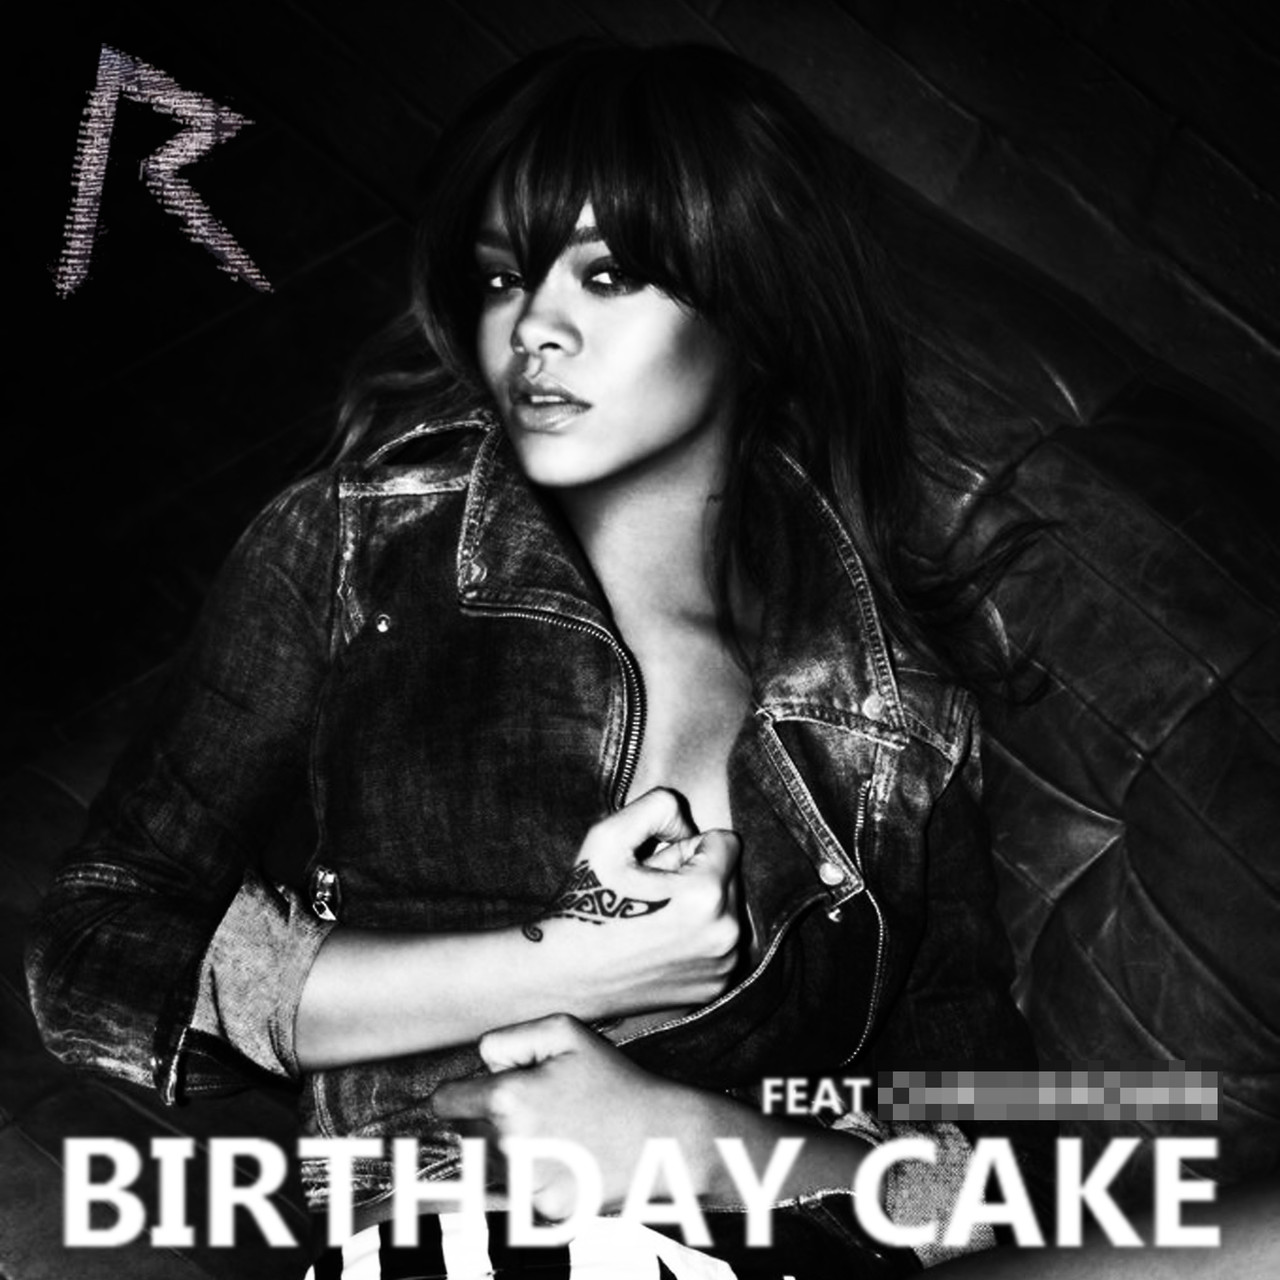 Best ideas about Birthday Cake Rihanna . Save or Pin BIRTHDAY CAKE RIHANNA Fomanda Gasa Now.